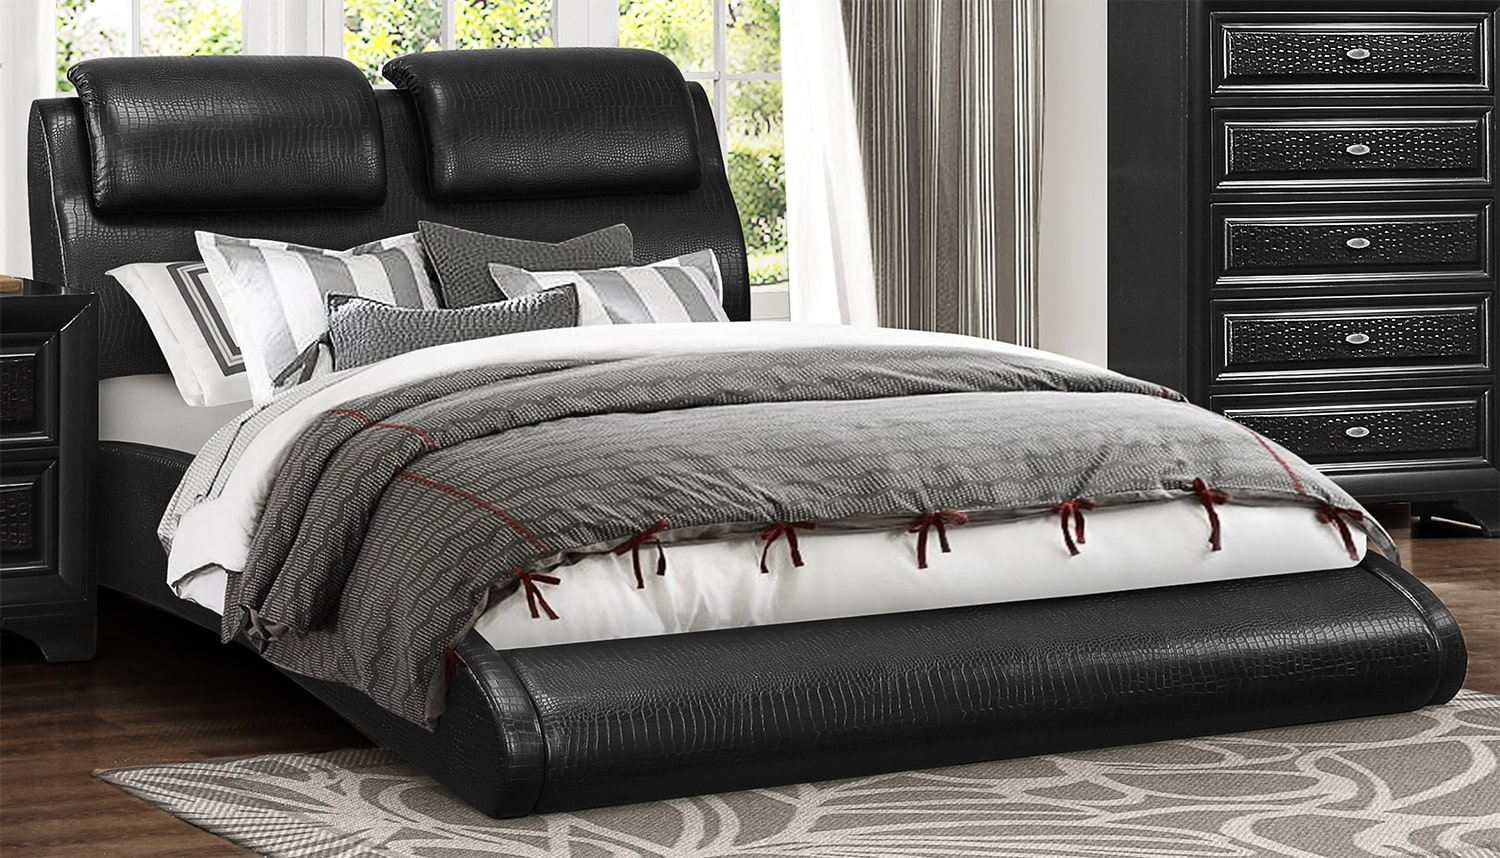 Roma Queen Bed - Black